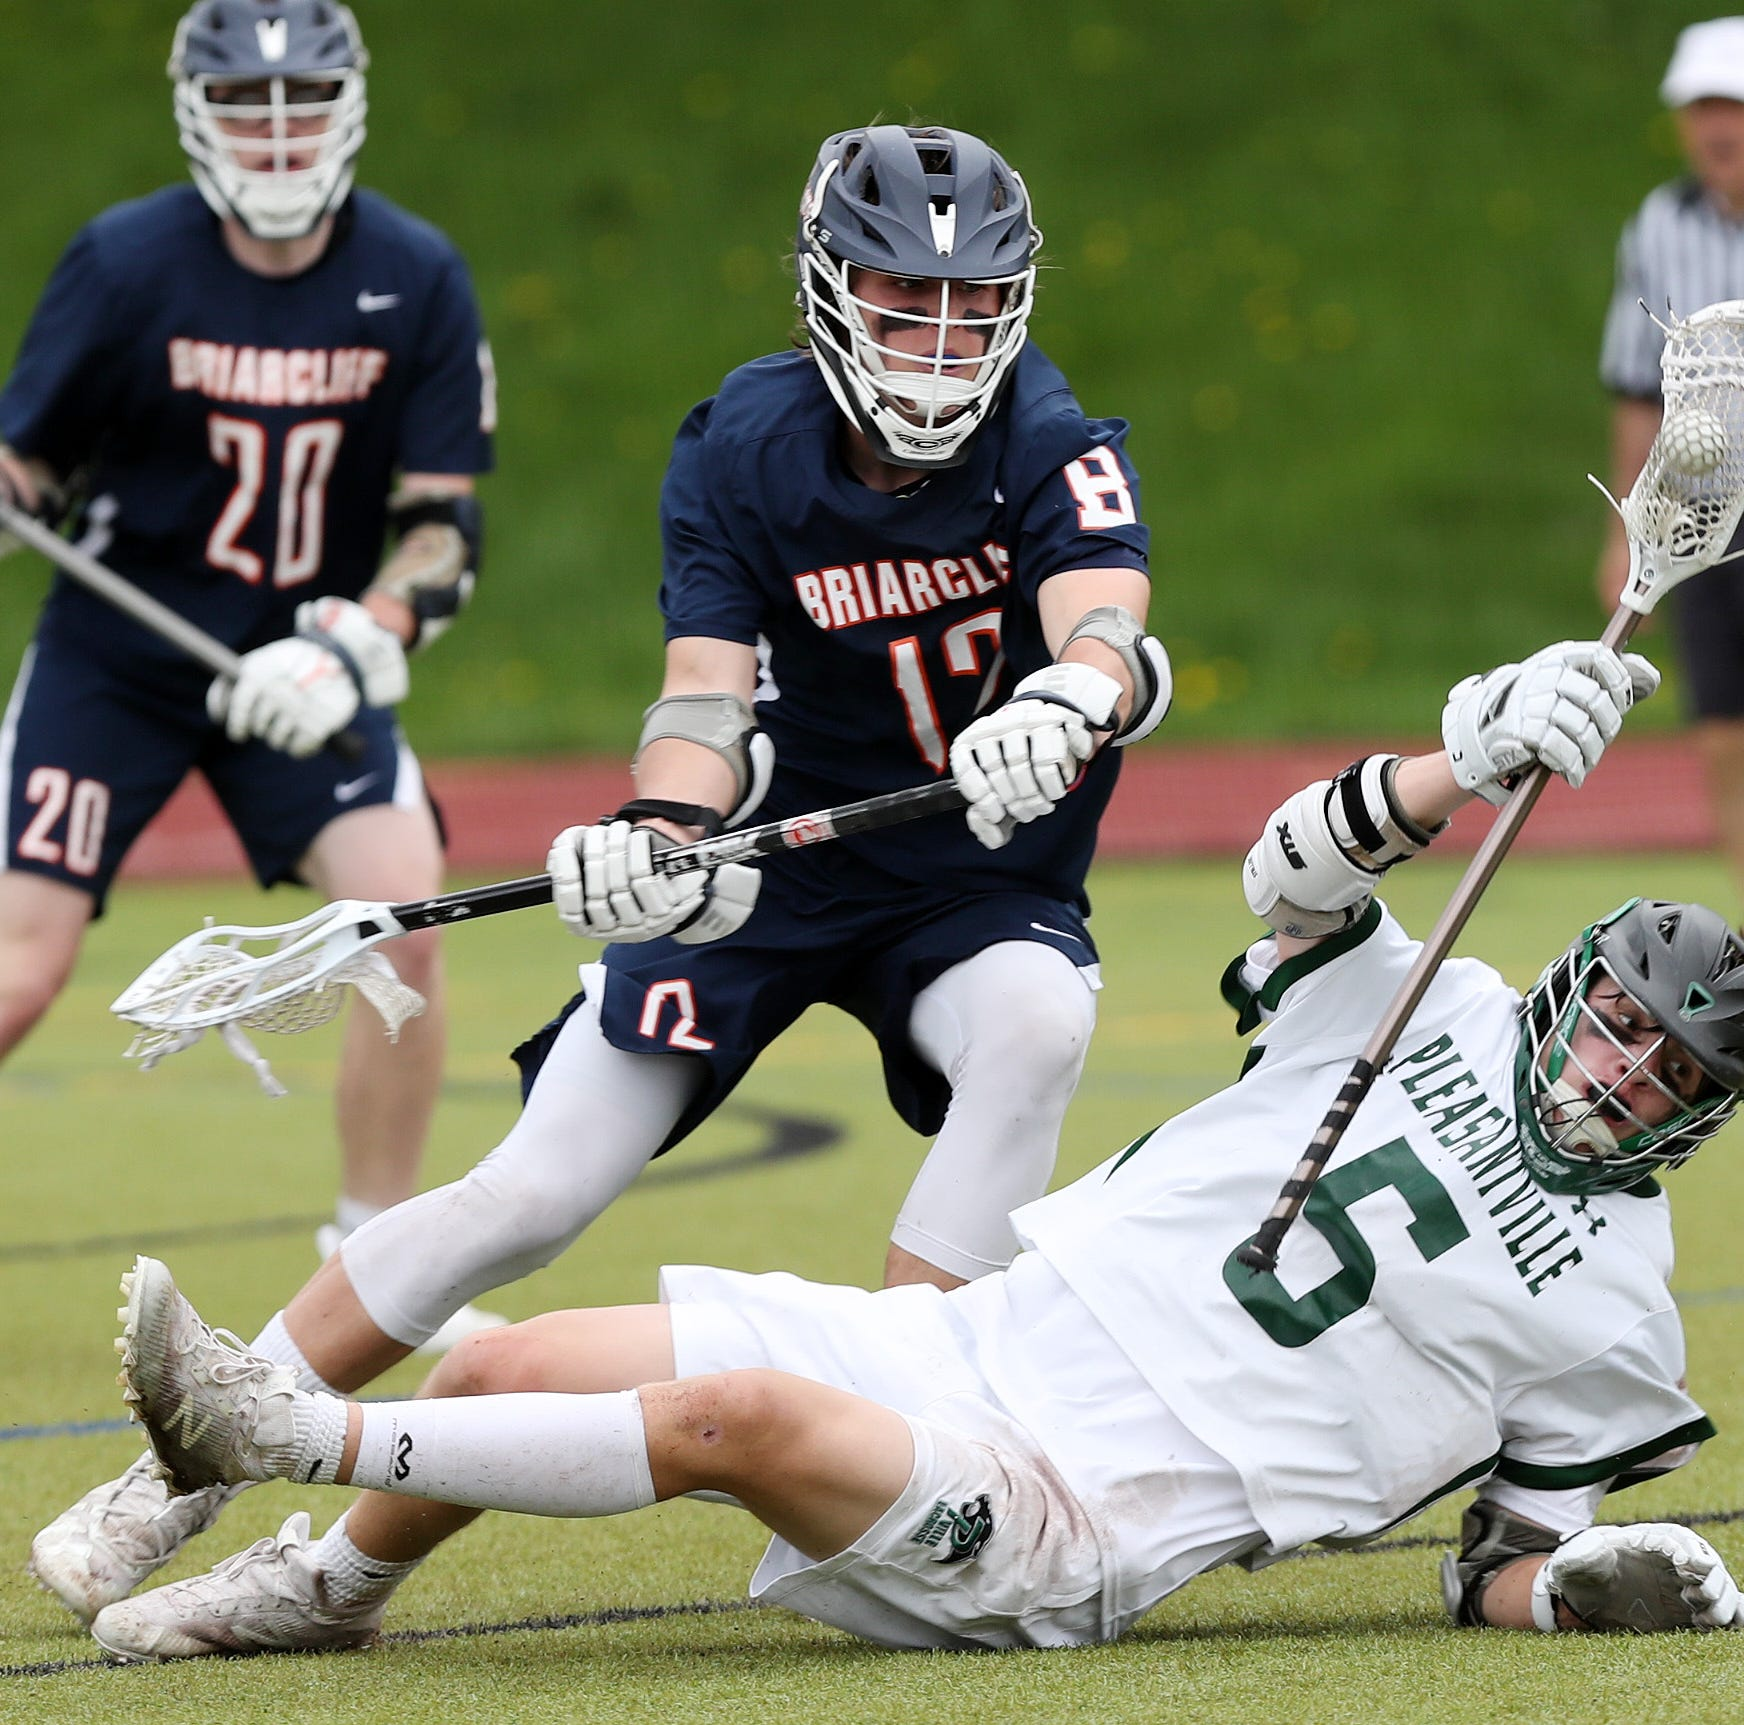 Boys lacrosse: Briarcliff holds on against Pleasantville